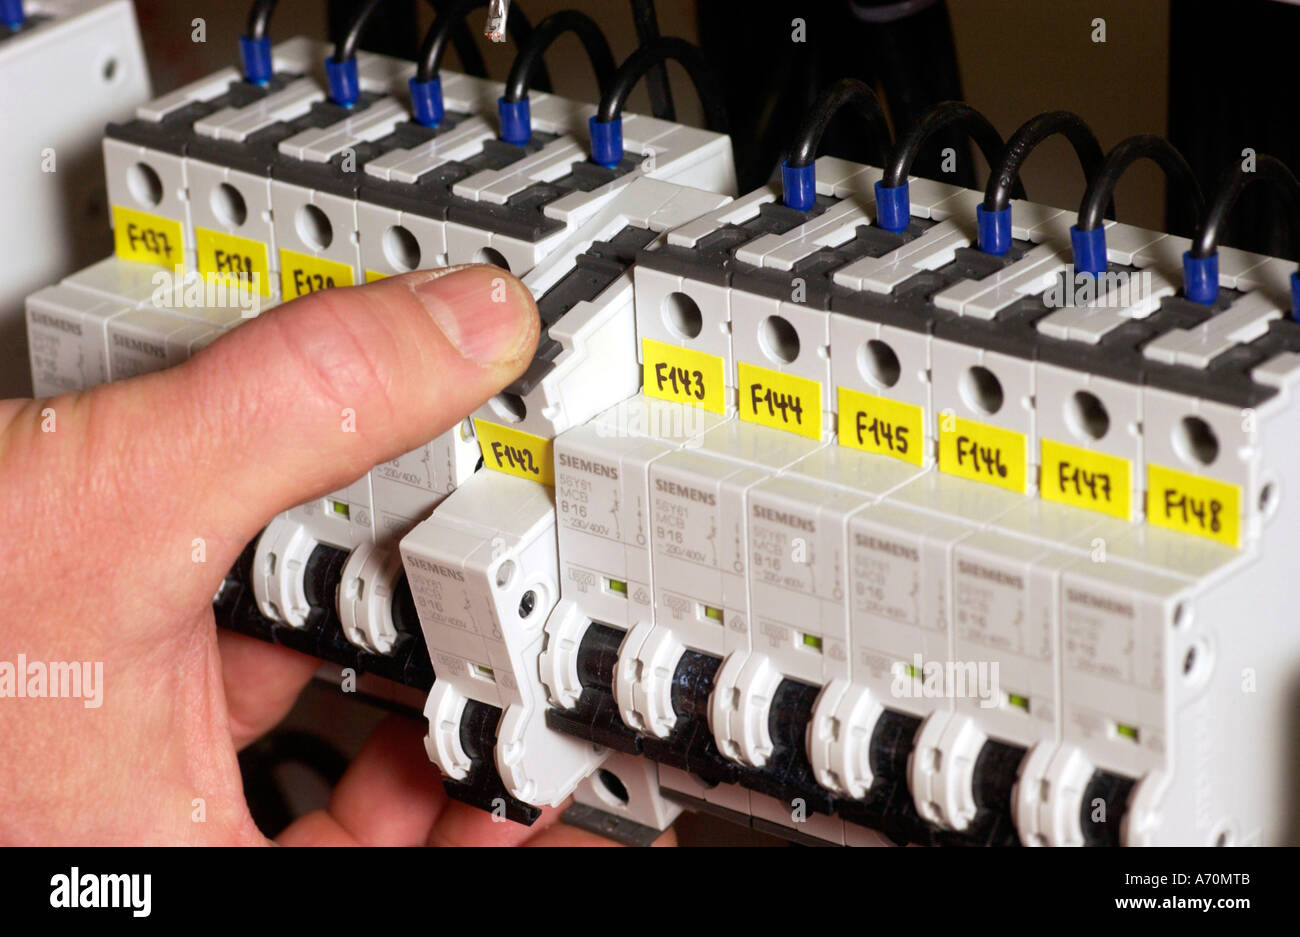 building of switchgears in a school installations of the current rh alamy com Plastic Fuse Cartridge fuse box safety issues